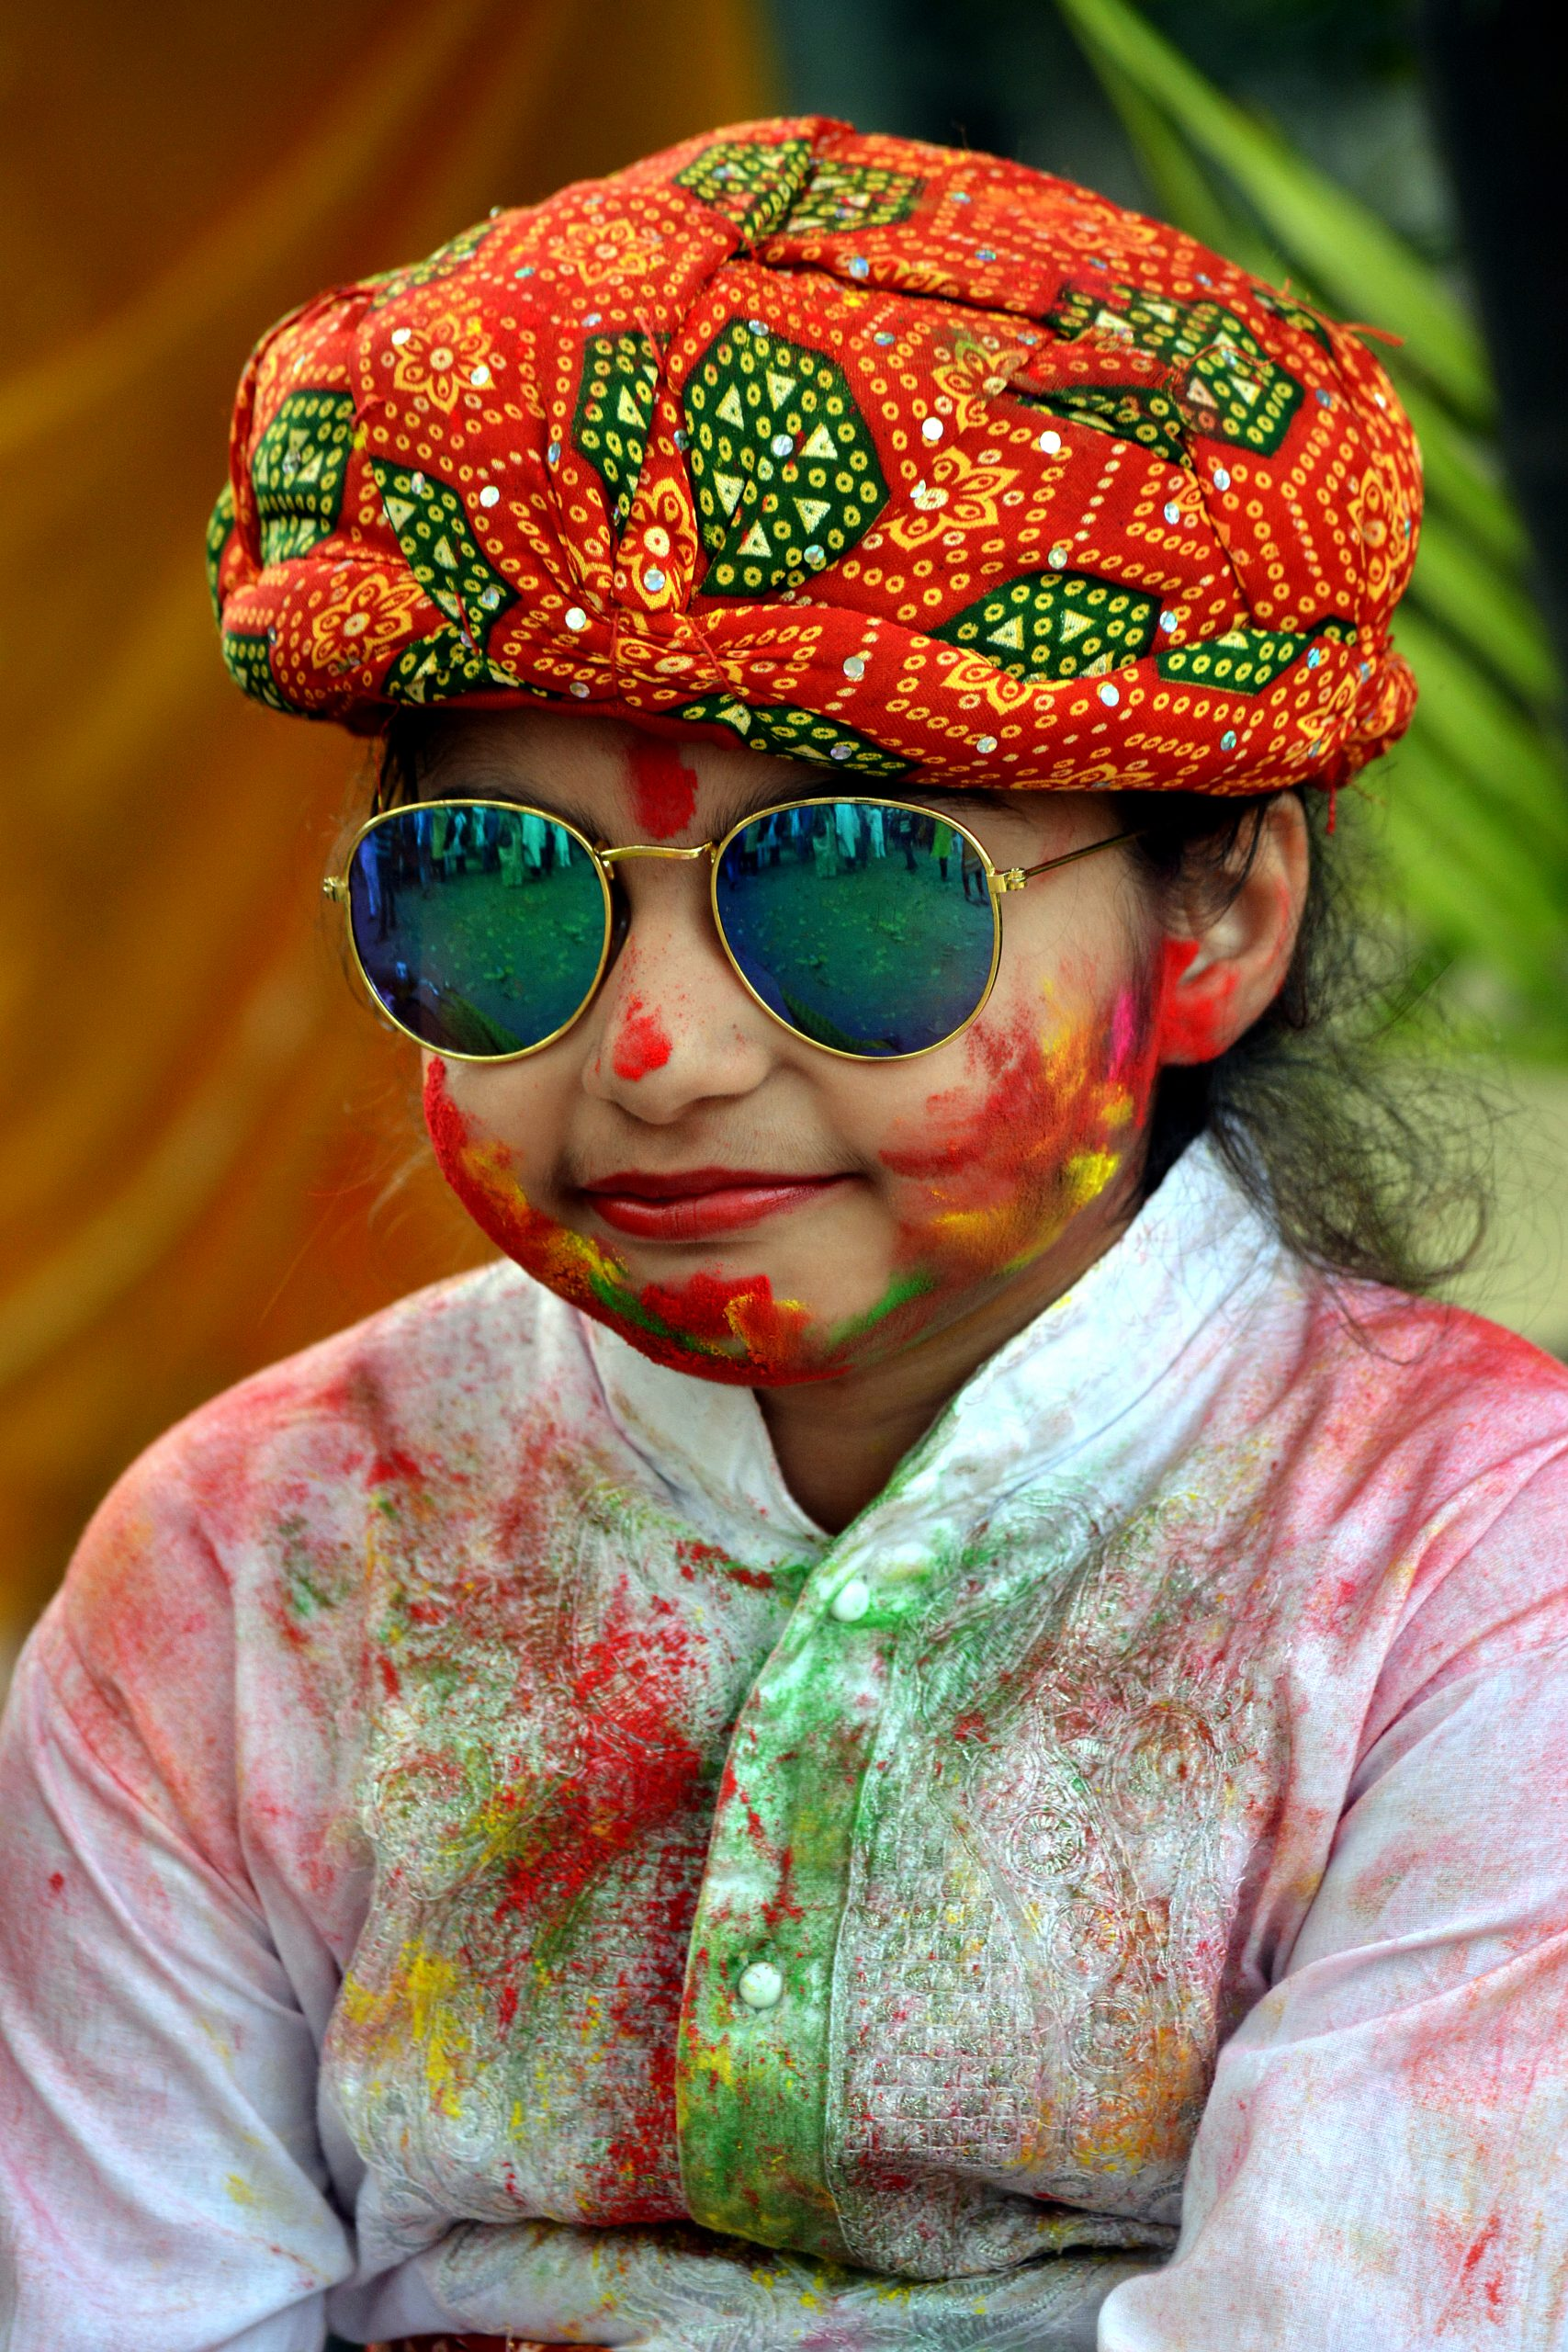 A kid during Holi festival